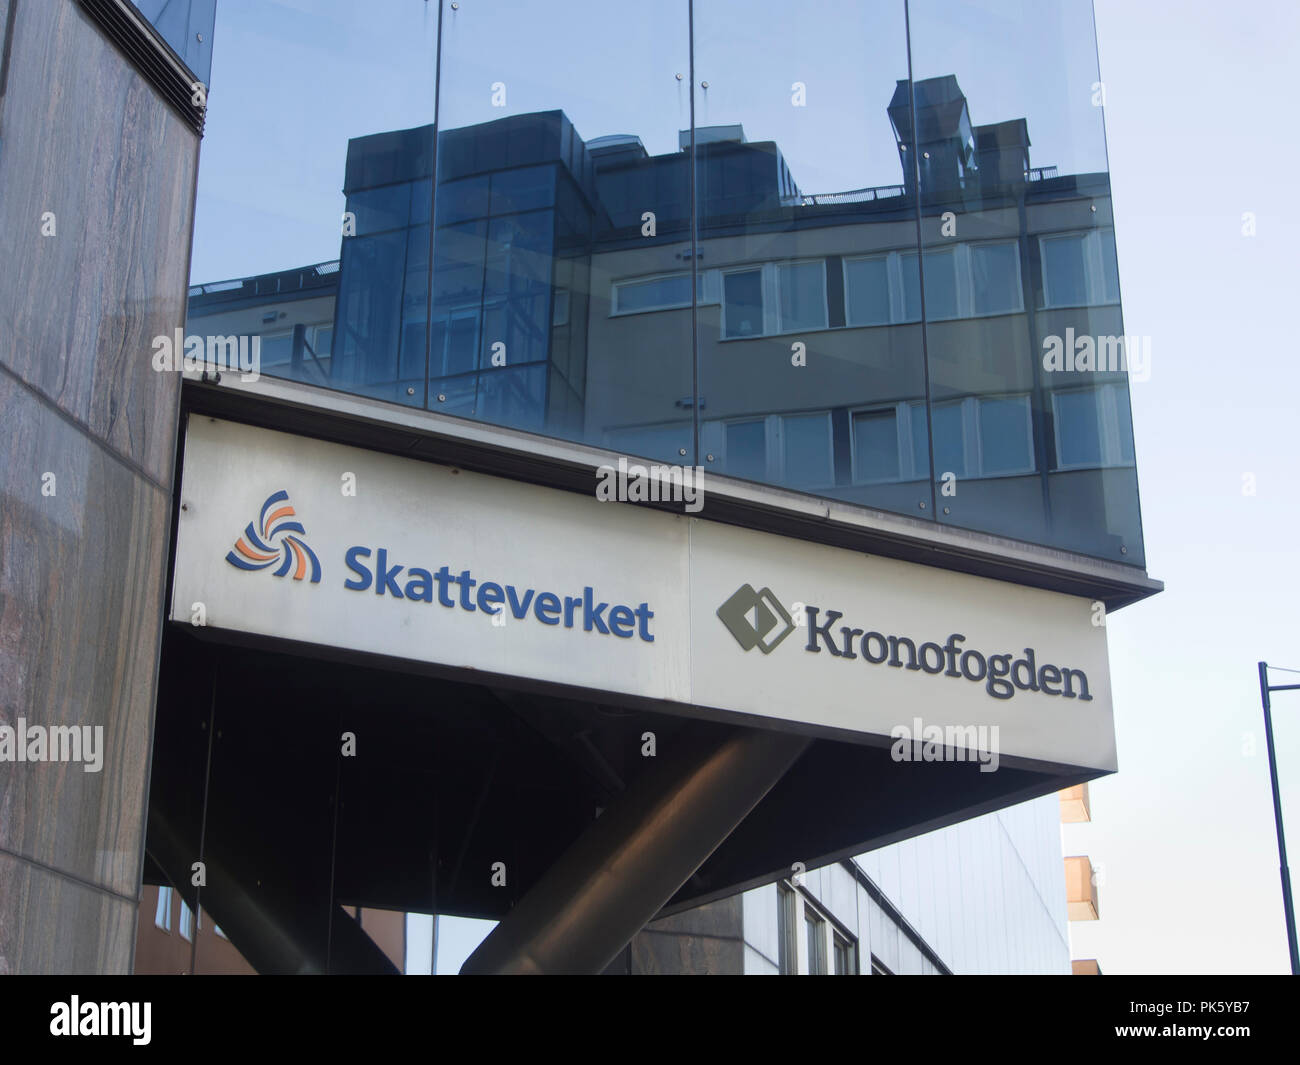 Taxation authority and tax collectors offices in Karlstad Värmland Sweden - Stock Image